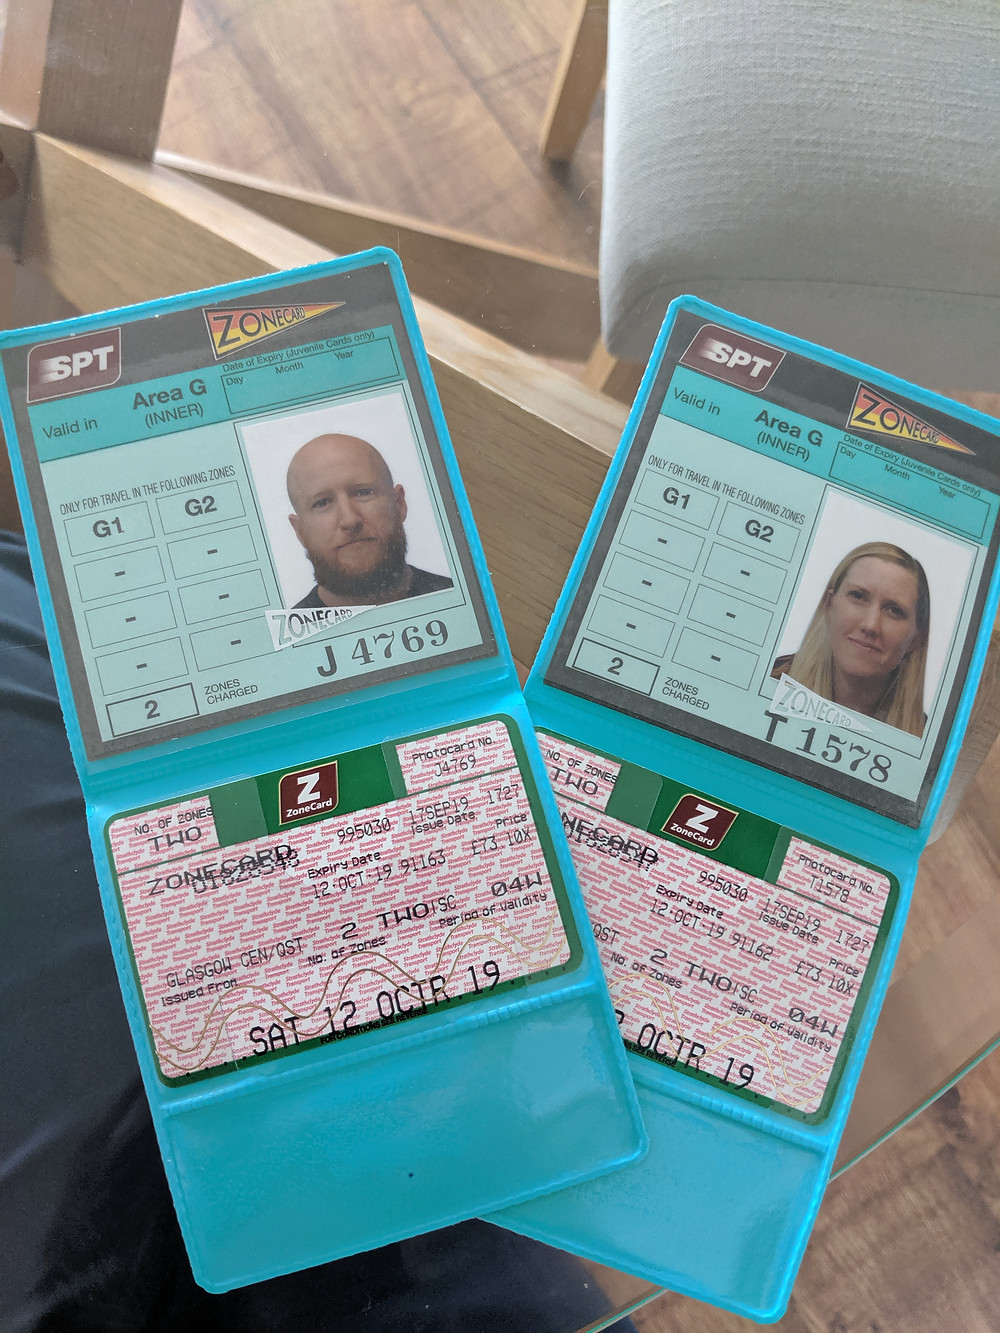 two zone cards with pictures of Eddie and Megan